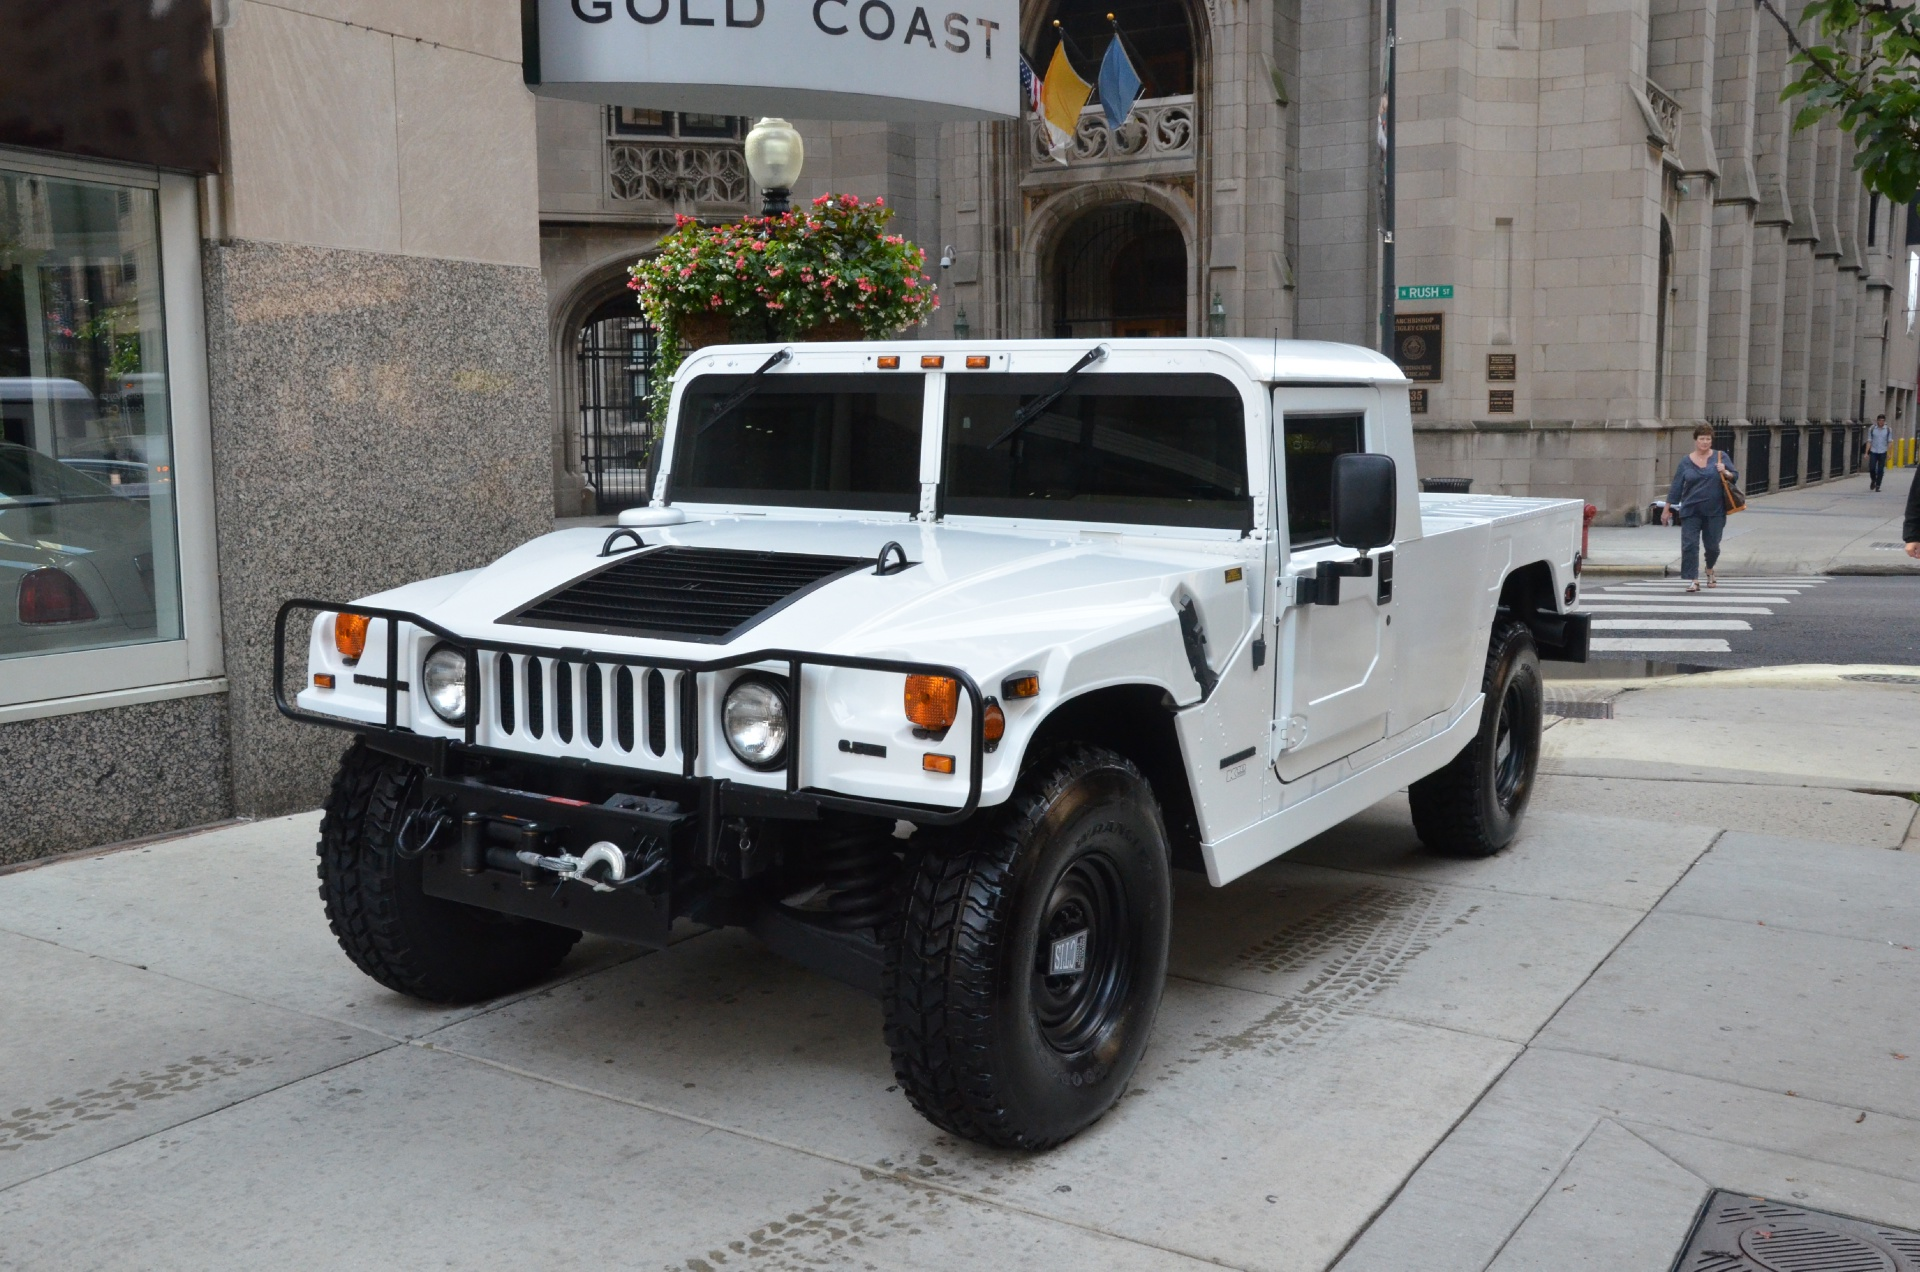 1996 Hummer H1 Stock GC1210B for sale near Chicago IL